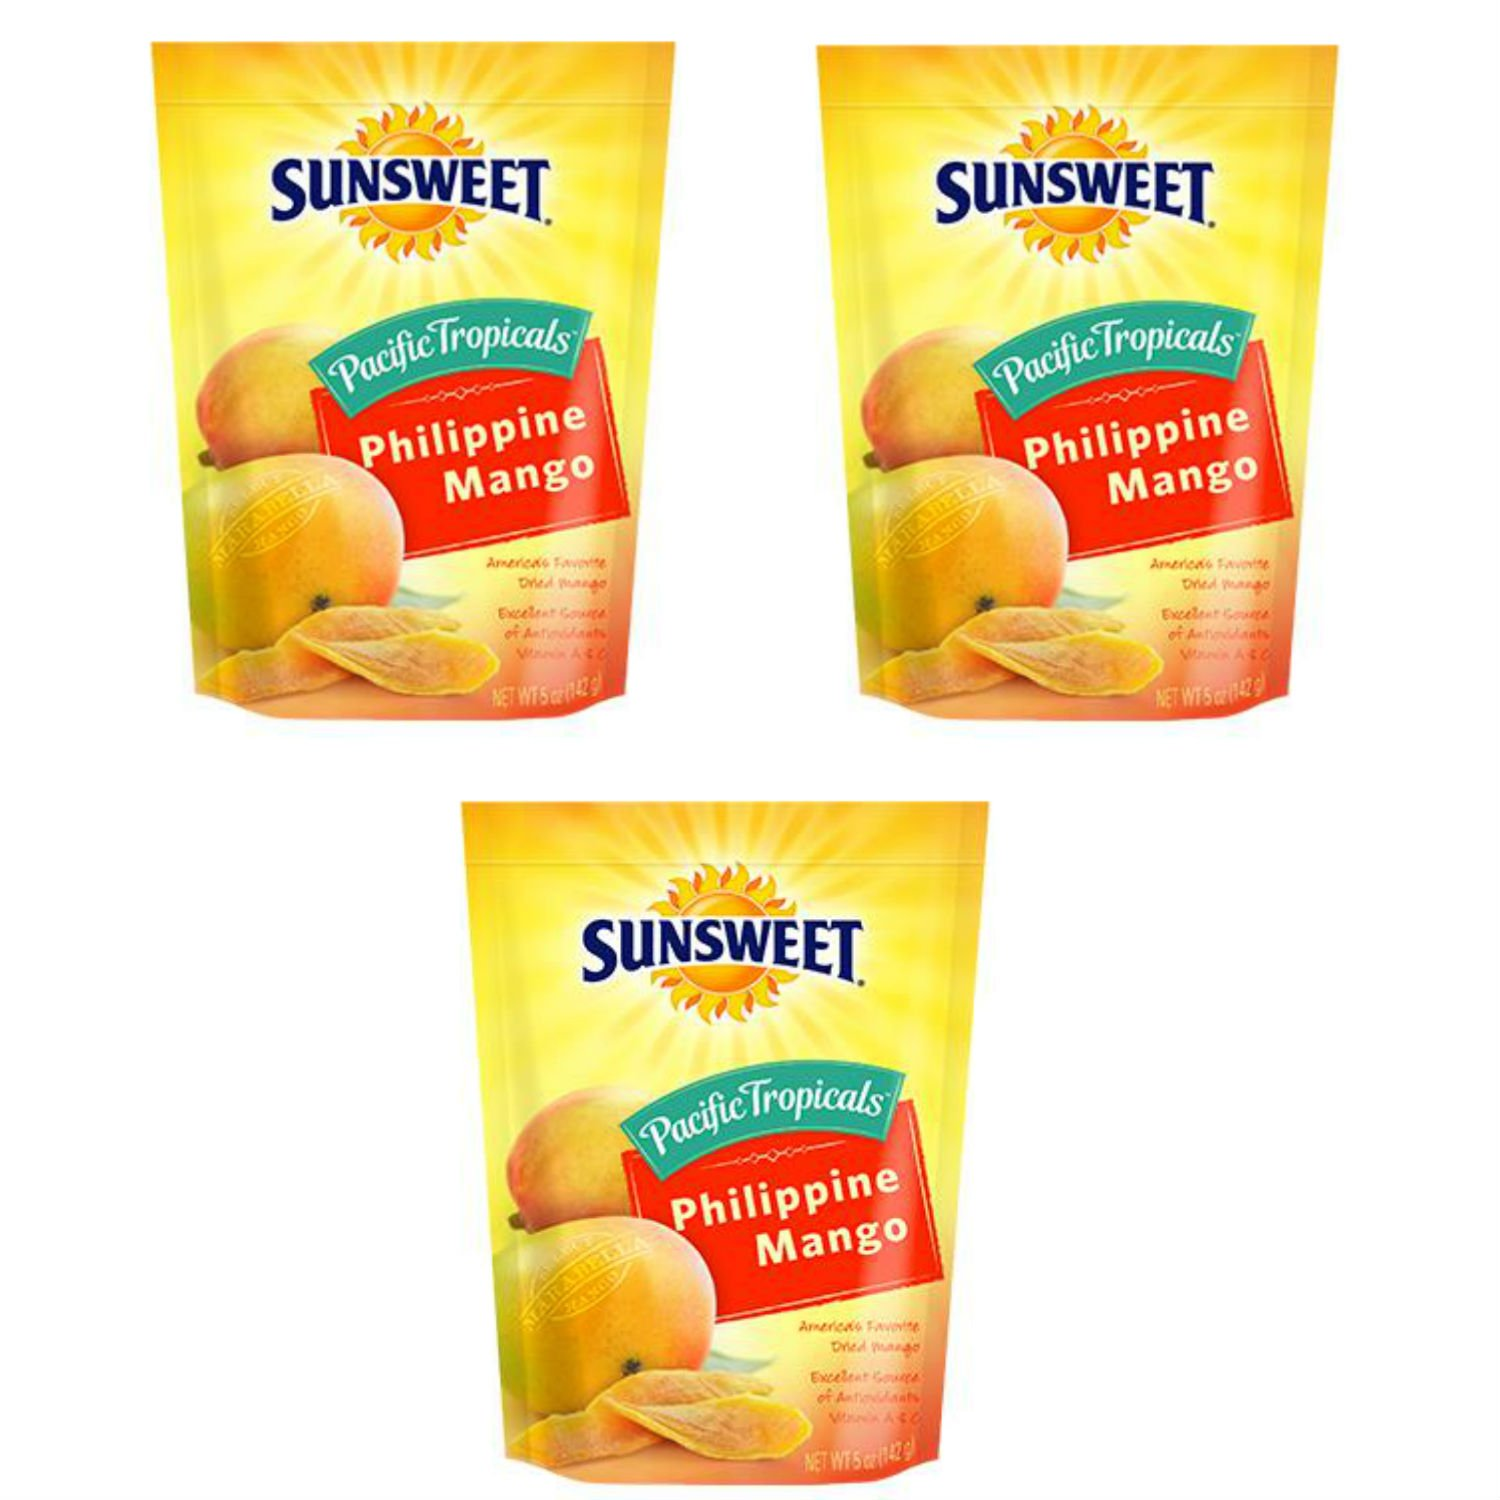 Sunsweet Pacific Tropical Philippine Mangos. 5 Ounce Bags. Pack of 3. Americas Favorite Dried Marabella Mangoes. Sunsweet Dried Fruit is the Perfect Snacking Adventure.